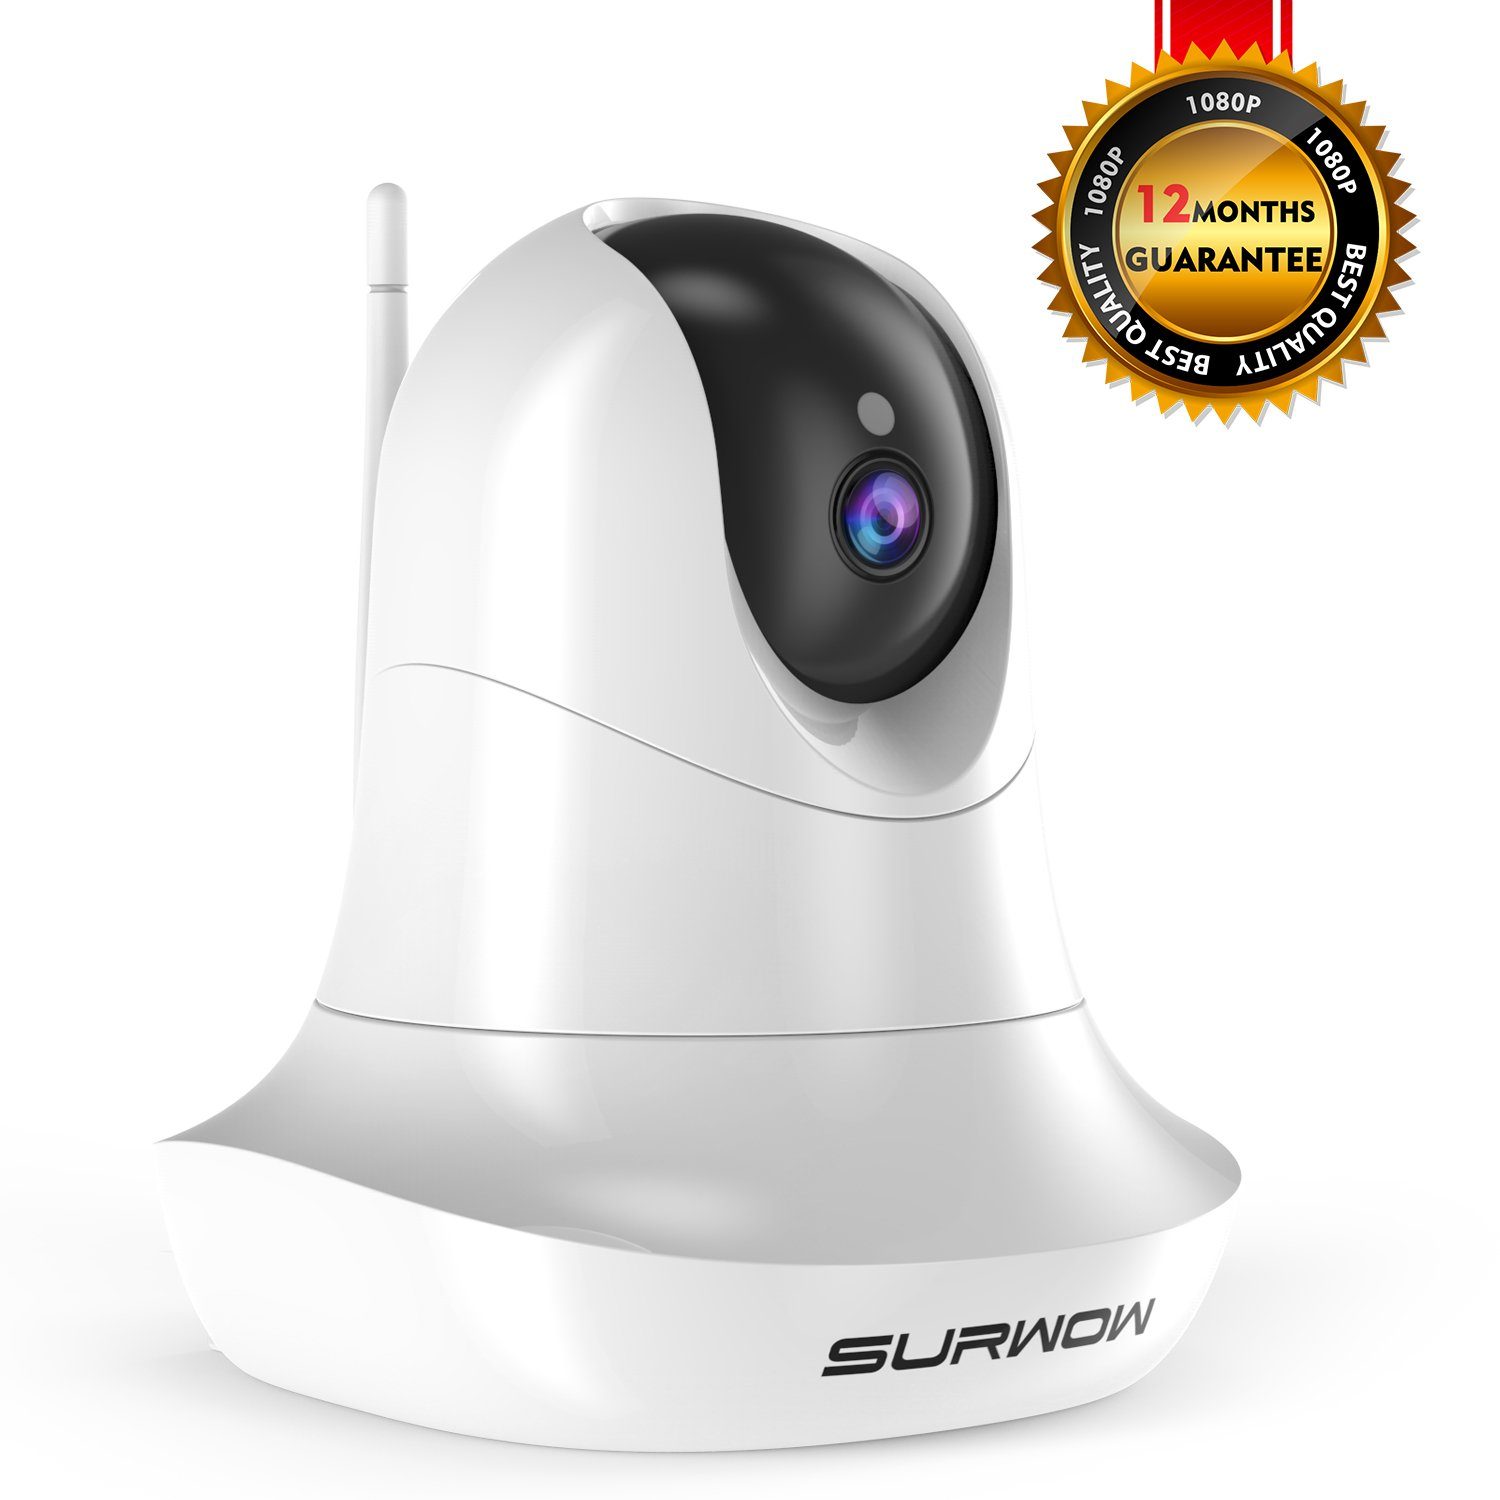 SURWOW Wireless IP Camera -1080P Wifi Surveillance Cameras Wireless HD with 2 Megapixel,Night Vision, Zoom/Pan/Tilt Control, Two-Way Audio for Baby,Pet Monitor and Home Security (WHITE)